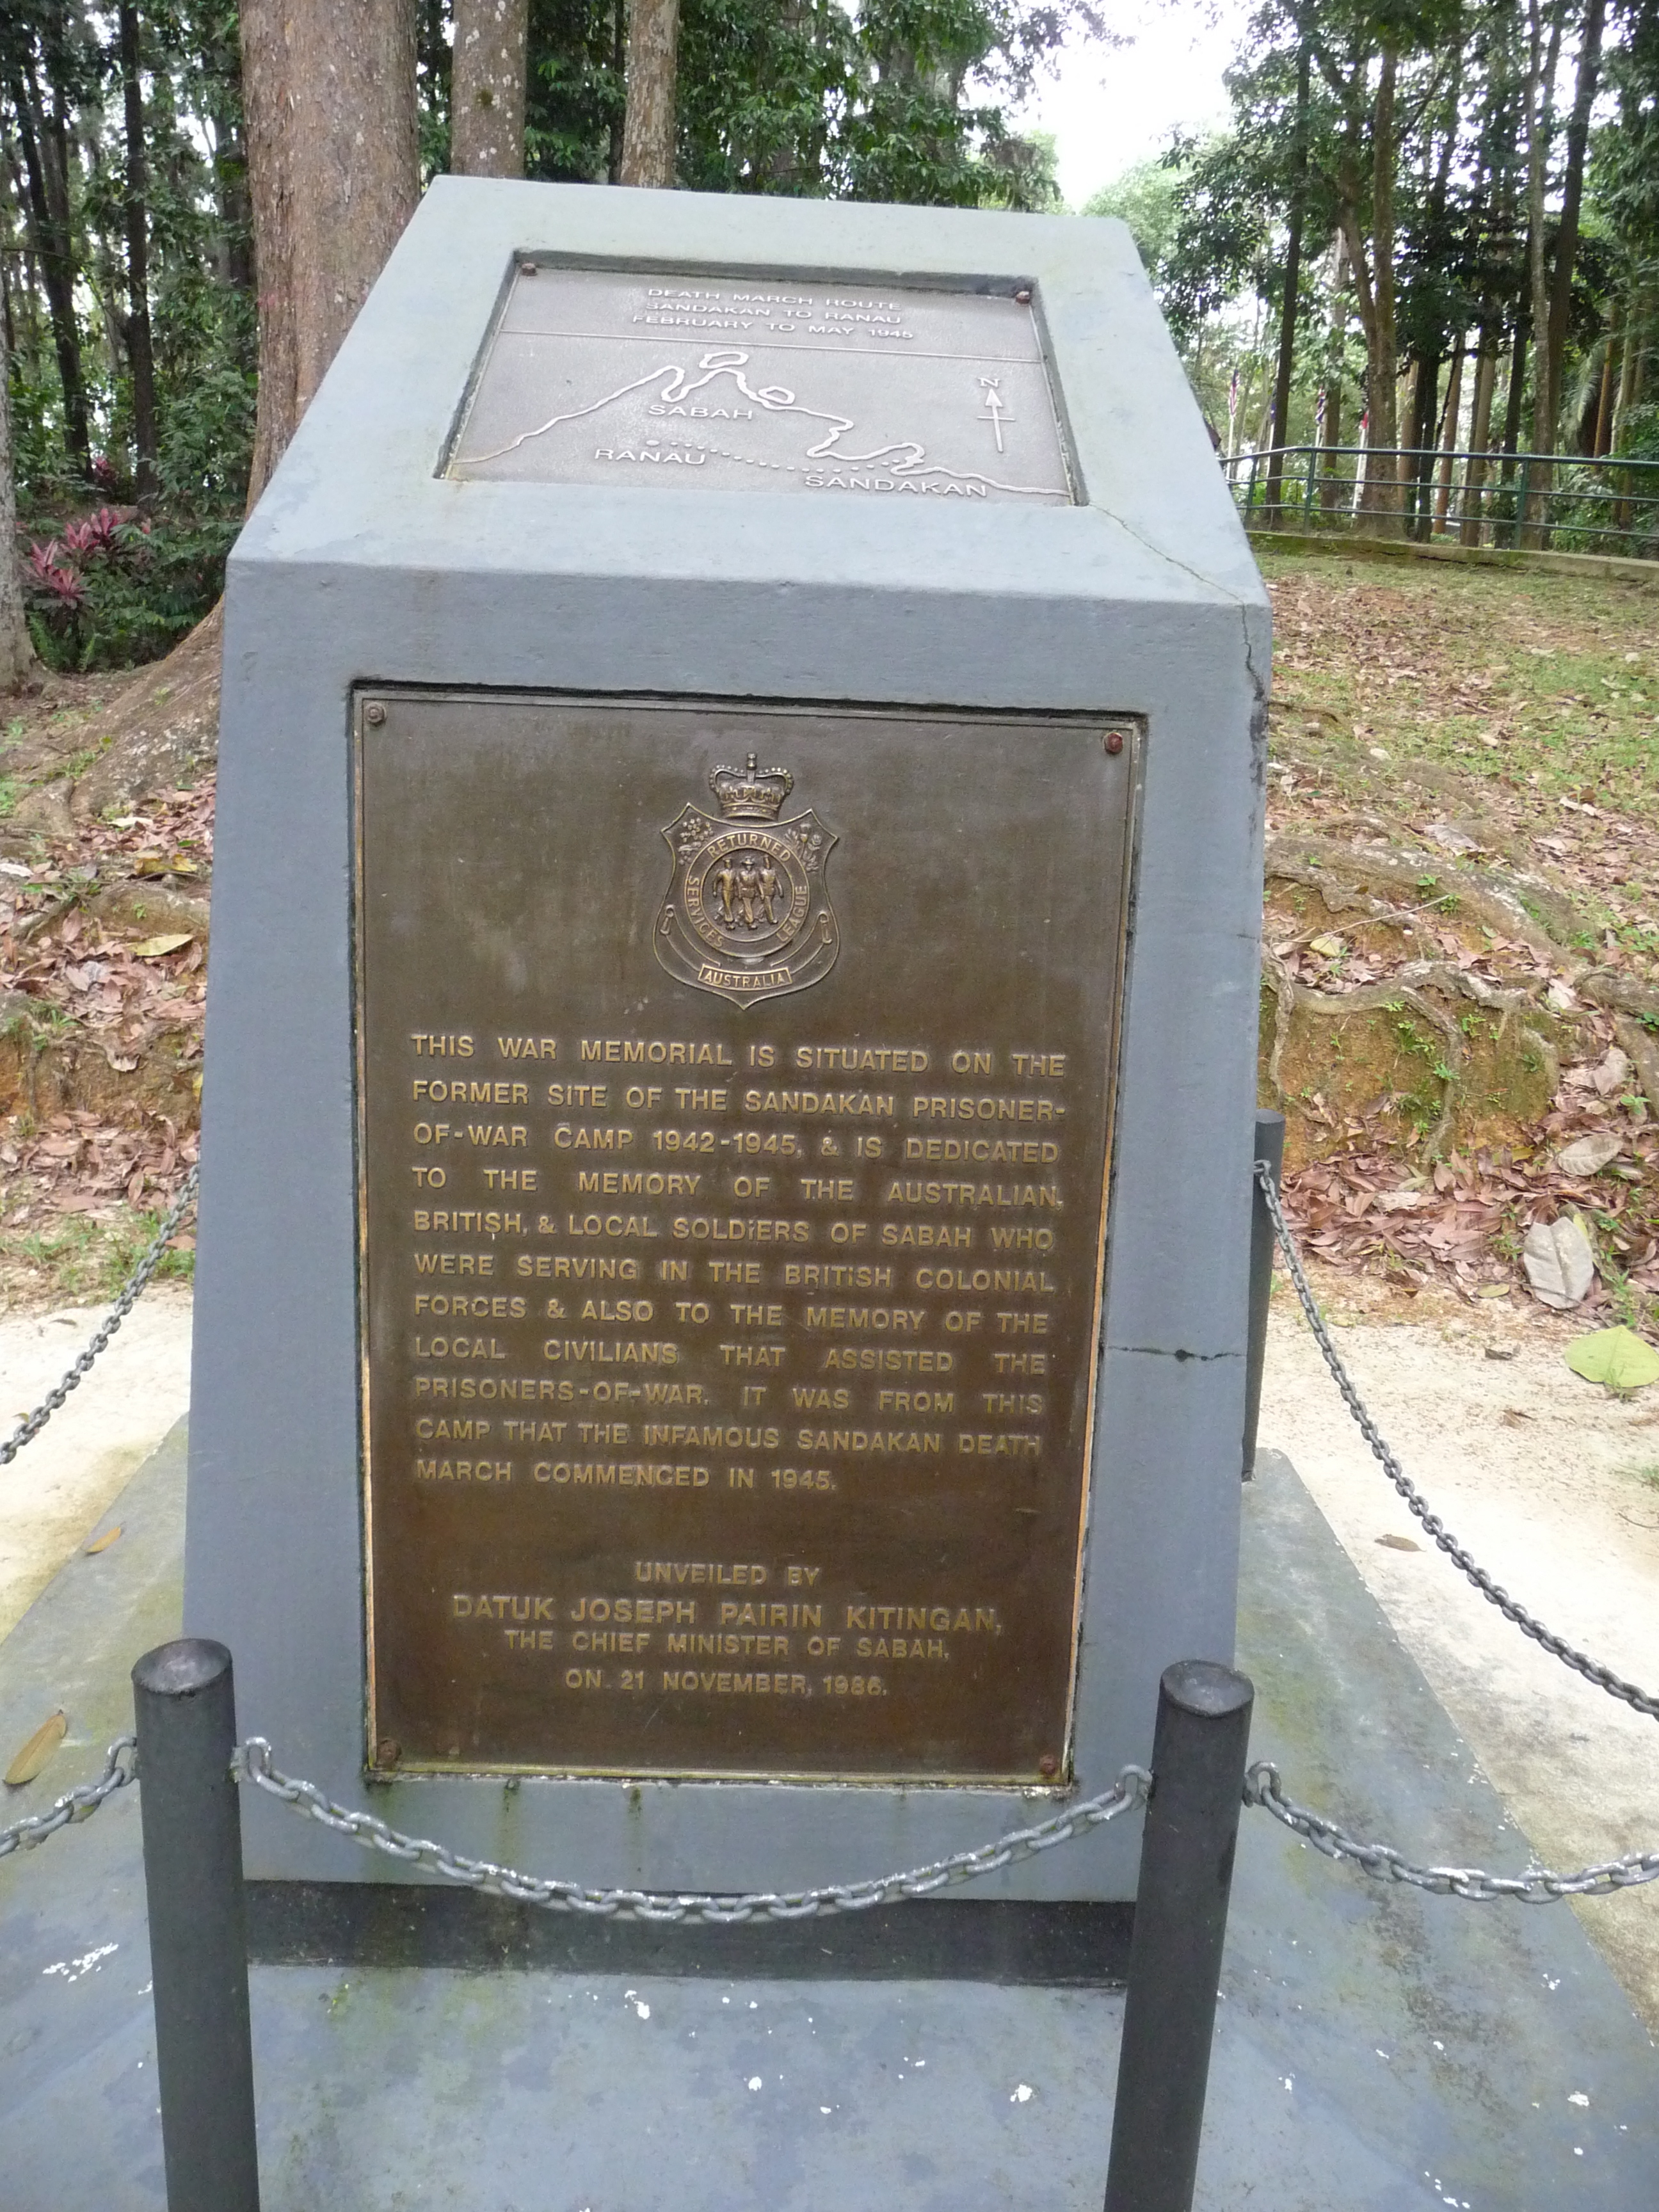 A memorial on the site of the notorious prisoner of war camp at Sandakan reminds vistors today of the allied personnel who didn't make it home, and the local people who tried so hard to help them...